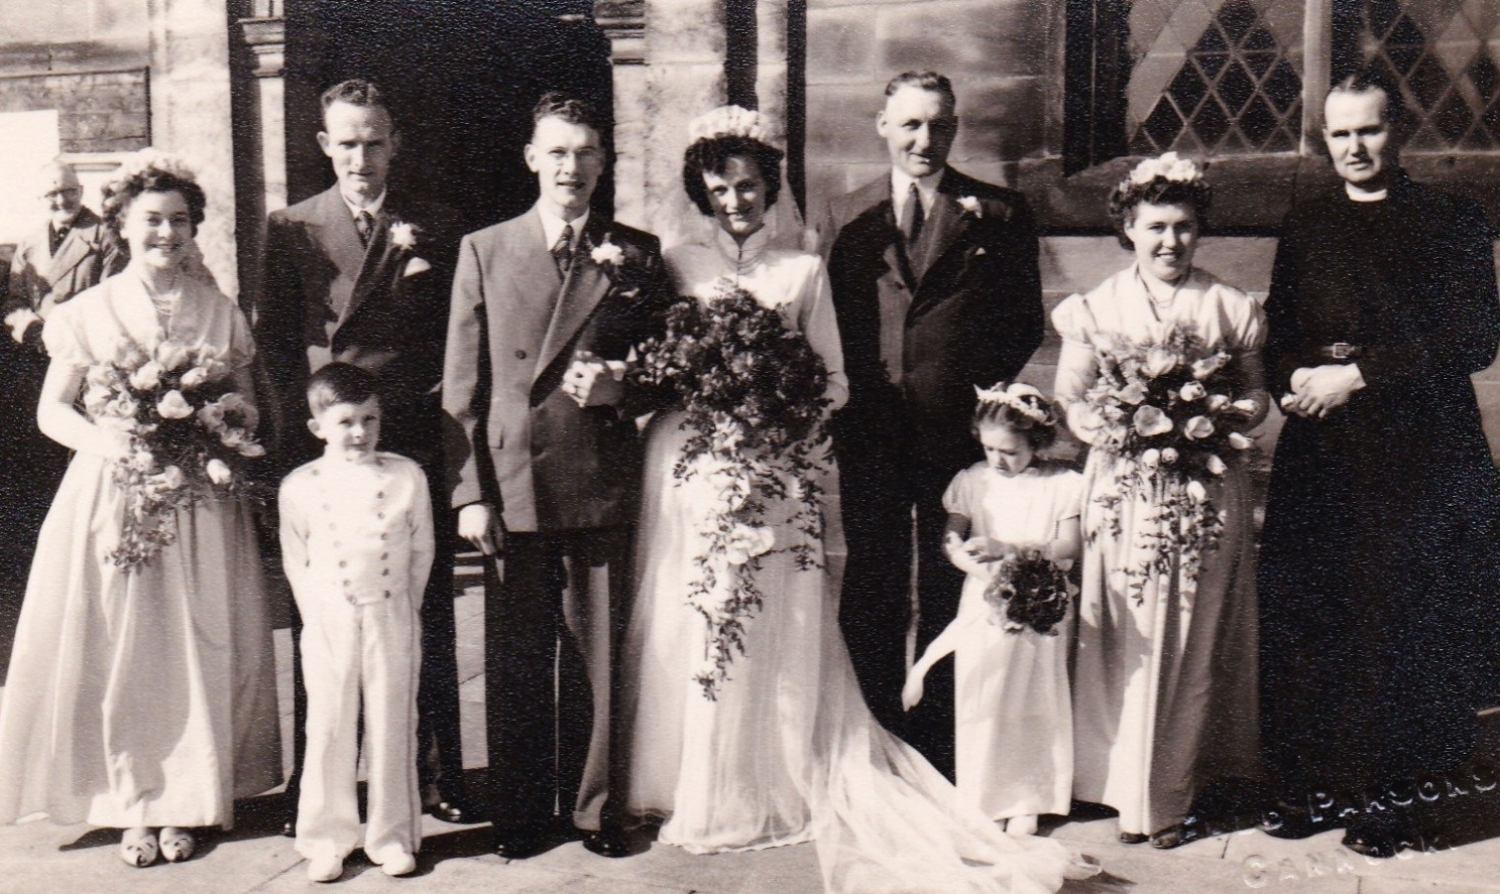 The wedding of John 'Jack' Brough & Daisy Iris Penton in 1952. Daisy's father, Charlie Penton is standing next to the bride. Her brother, James Henry 'Jim' Penton was best man and is standing next to the groom.